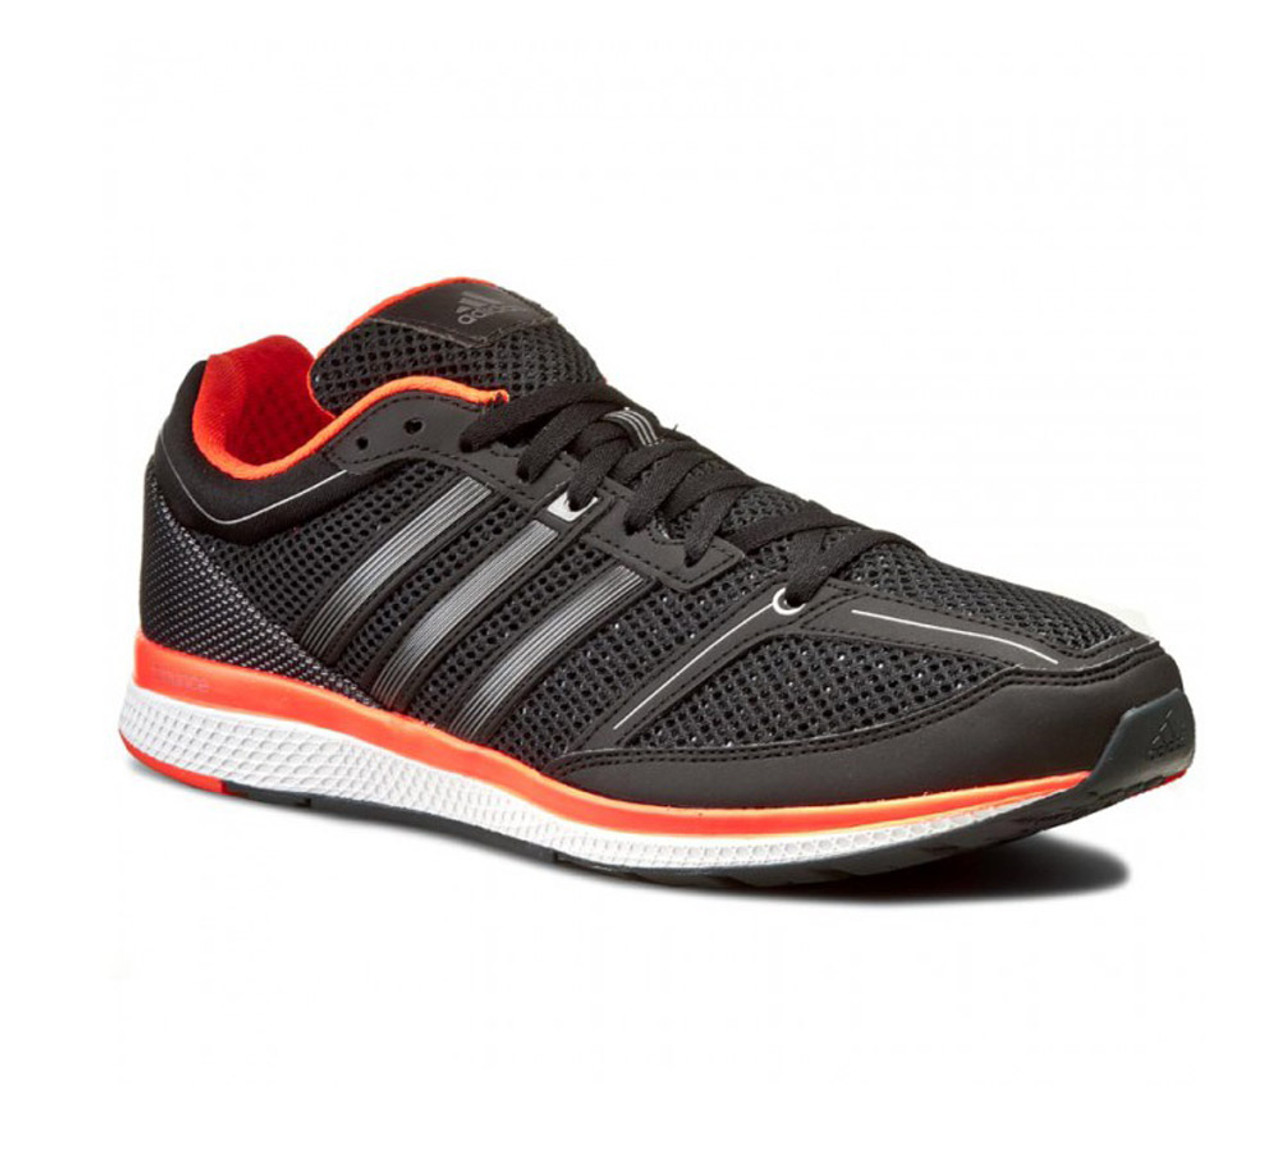 1c91f9e95 Adidas Men s Mana RC Bounce Running Shoe Black Solar Red - Shop now   Shoolu